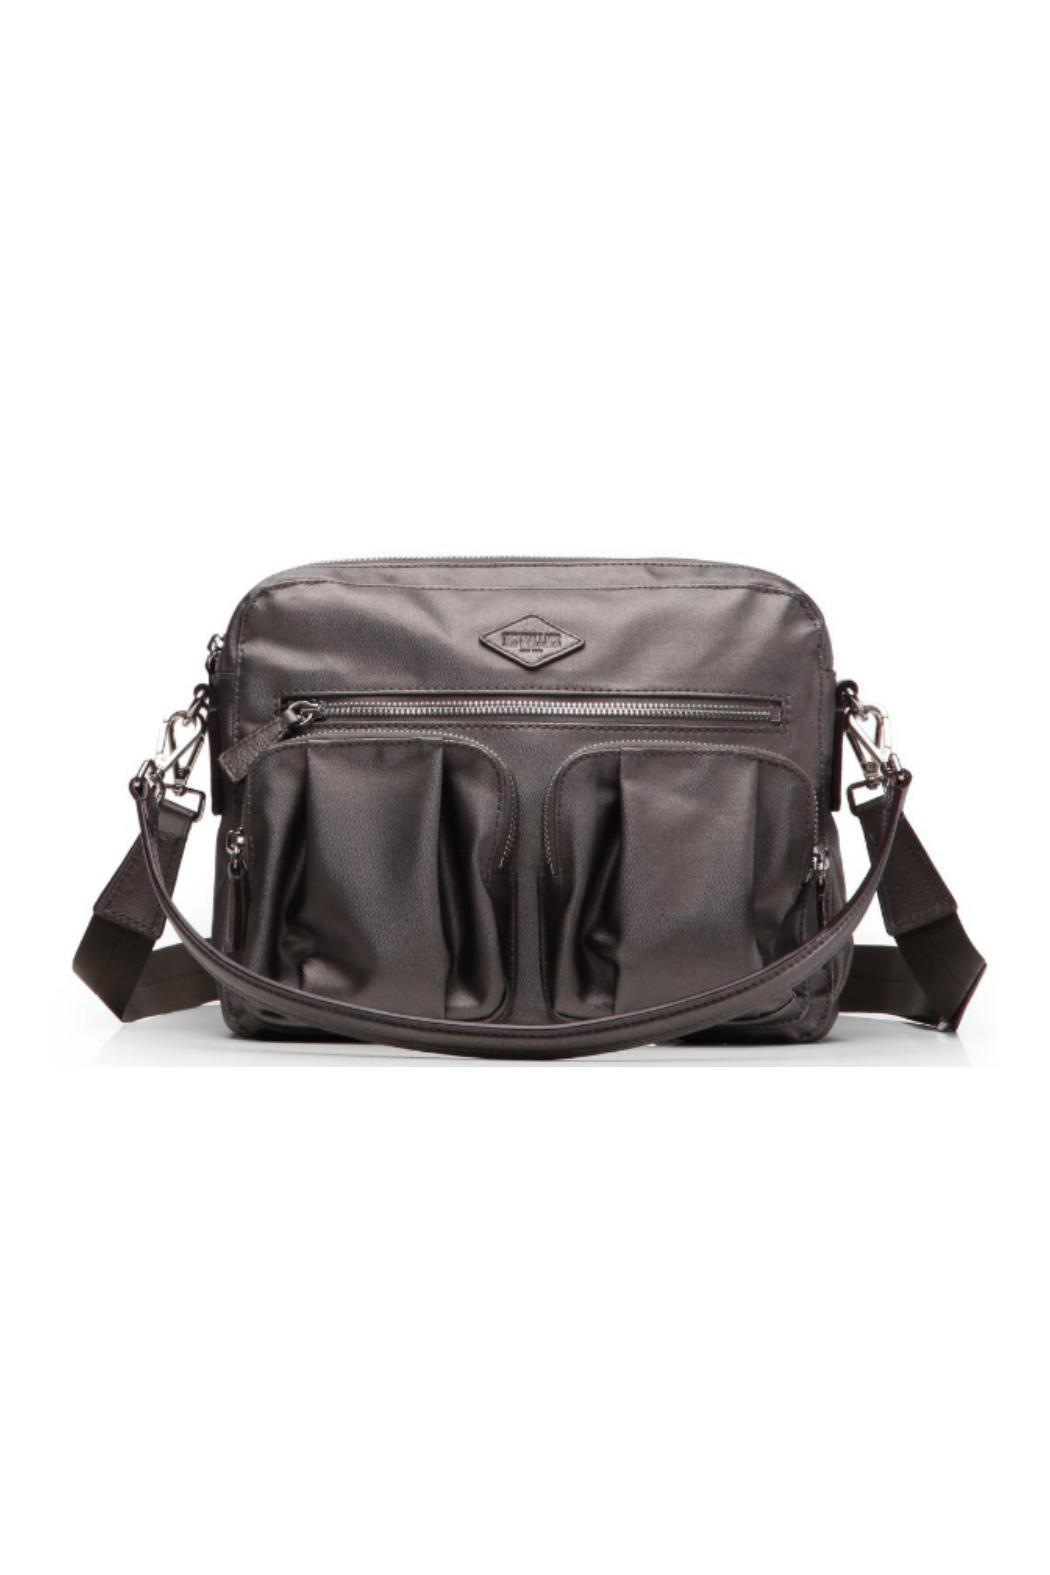 4c723043b31b MZ Wallace Roxy Crossbody from New York by Let s Bag It — Shoptiques